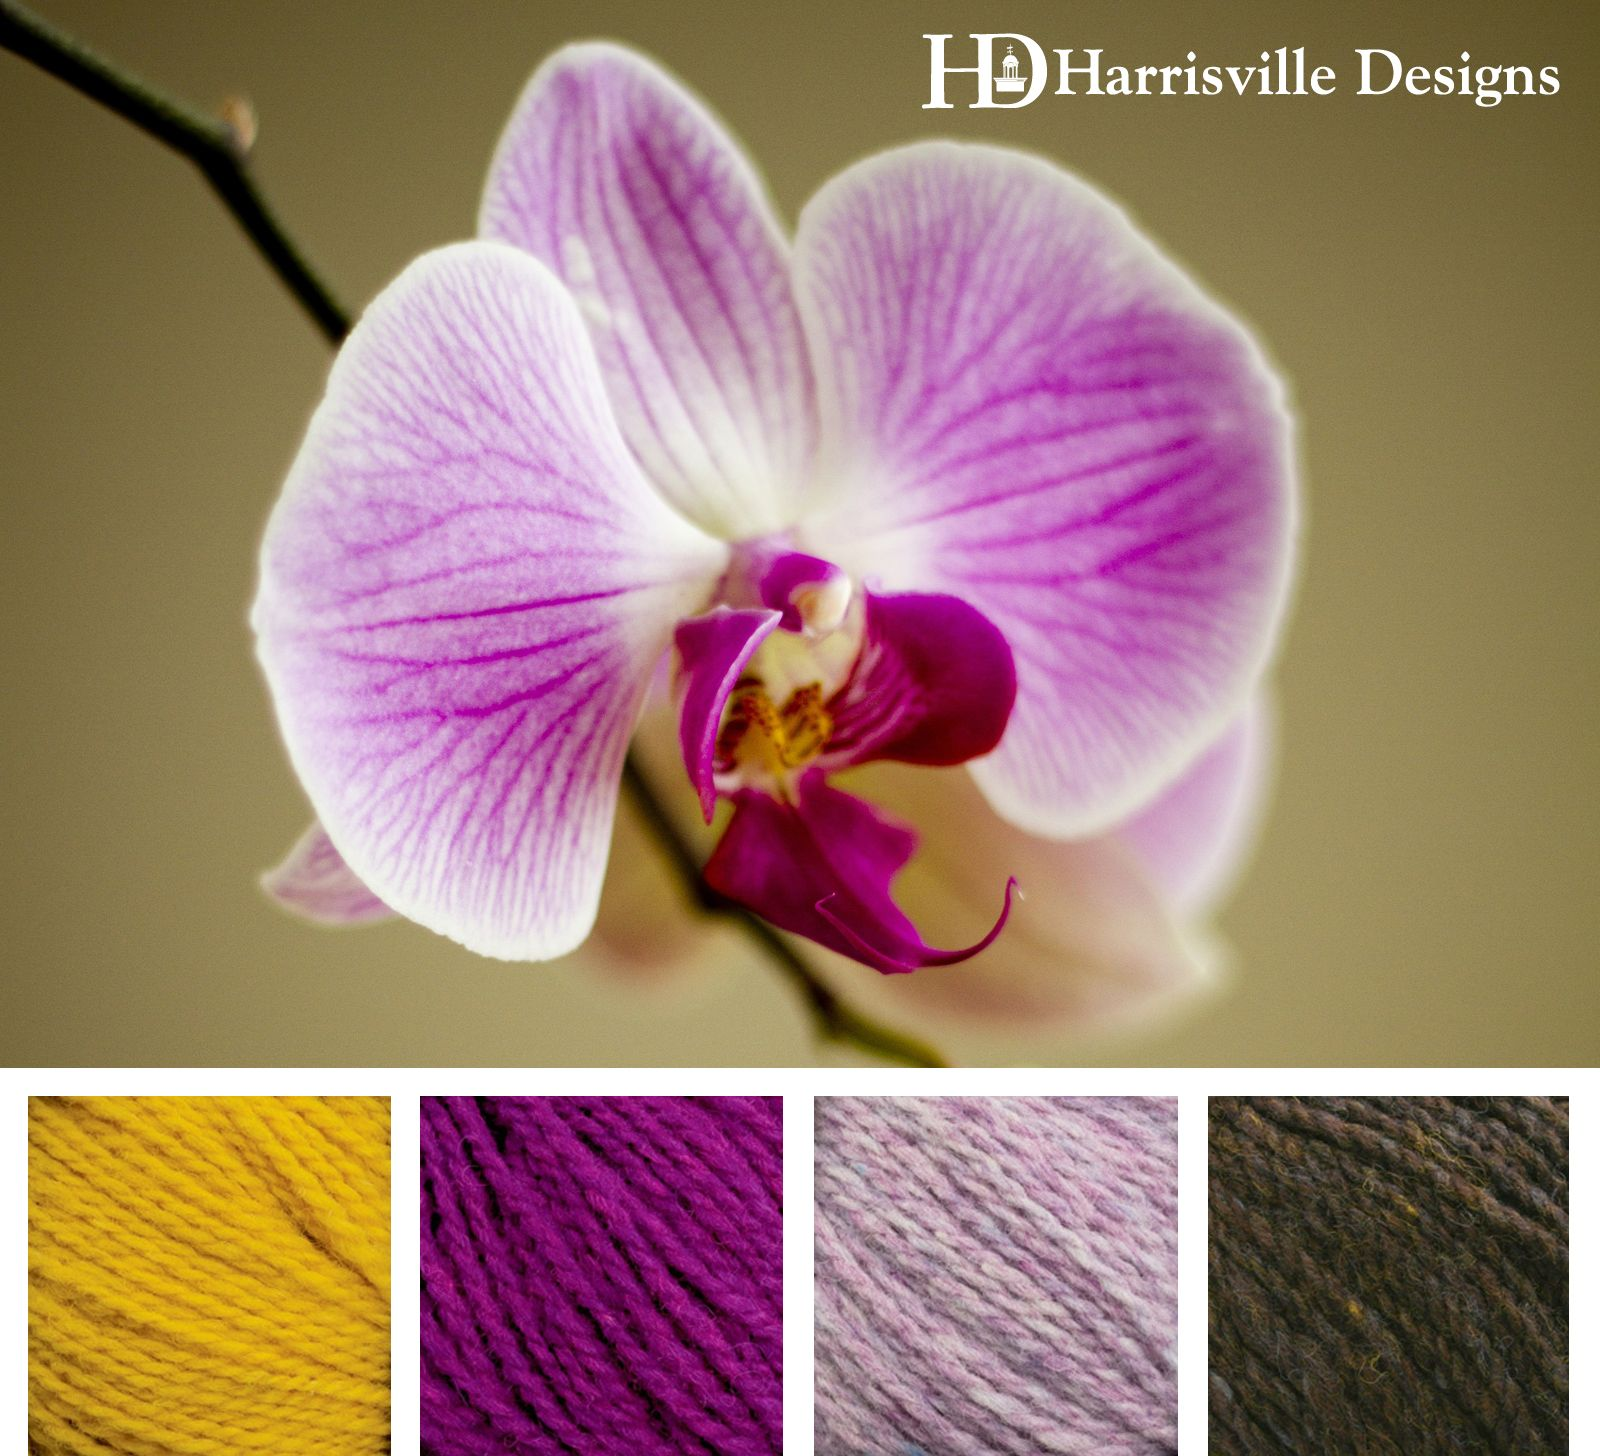 Orchid yarn color template. Shetland Yarns: Marigold, Magenta, Lilac, and Walnut from Harrisville Designs.